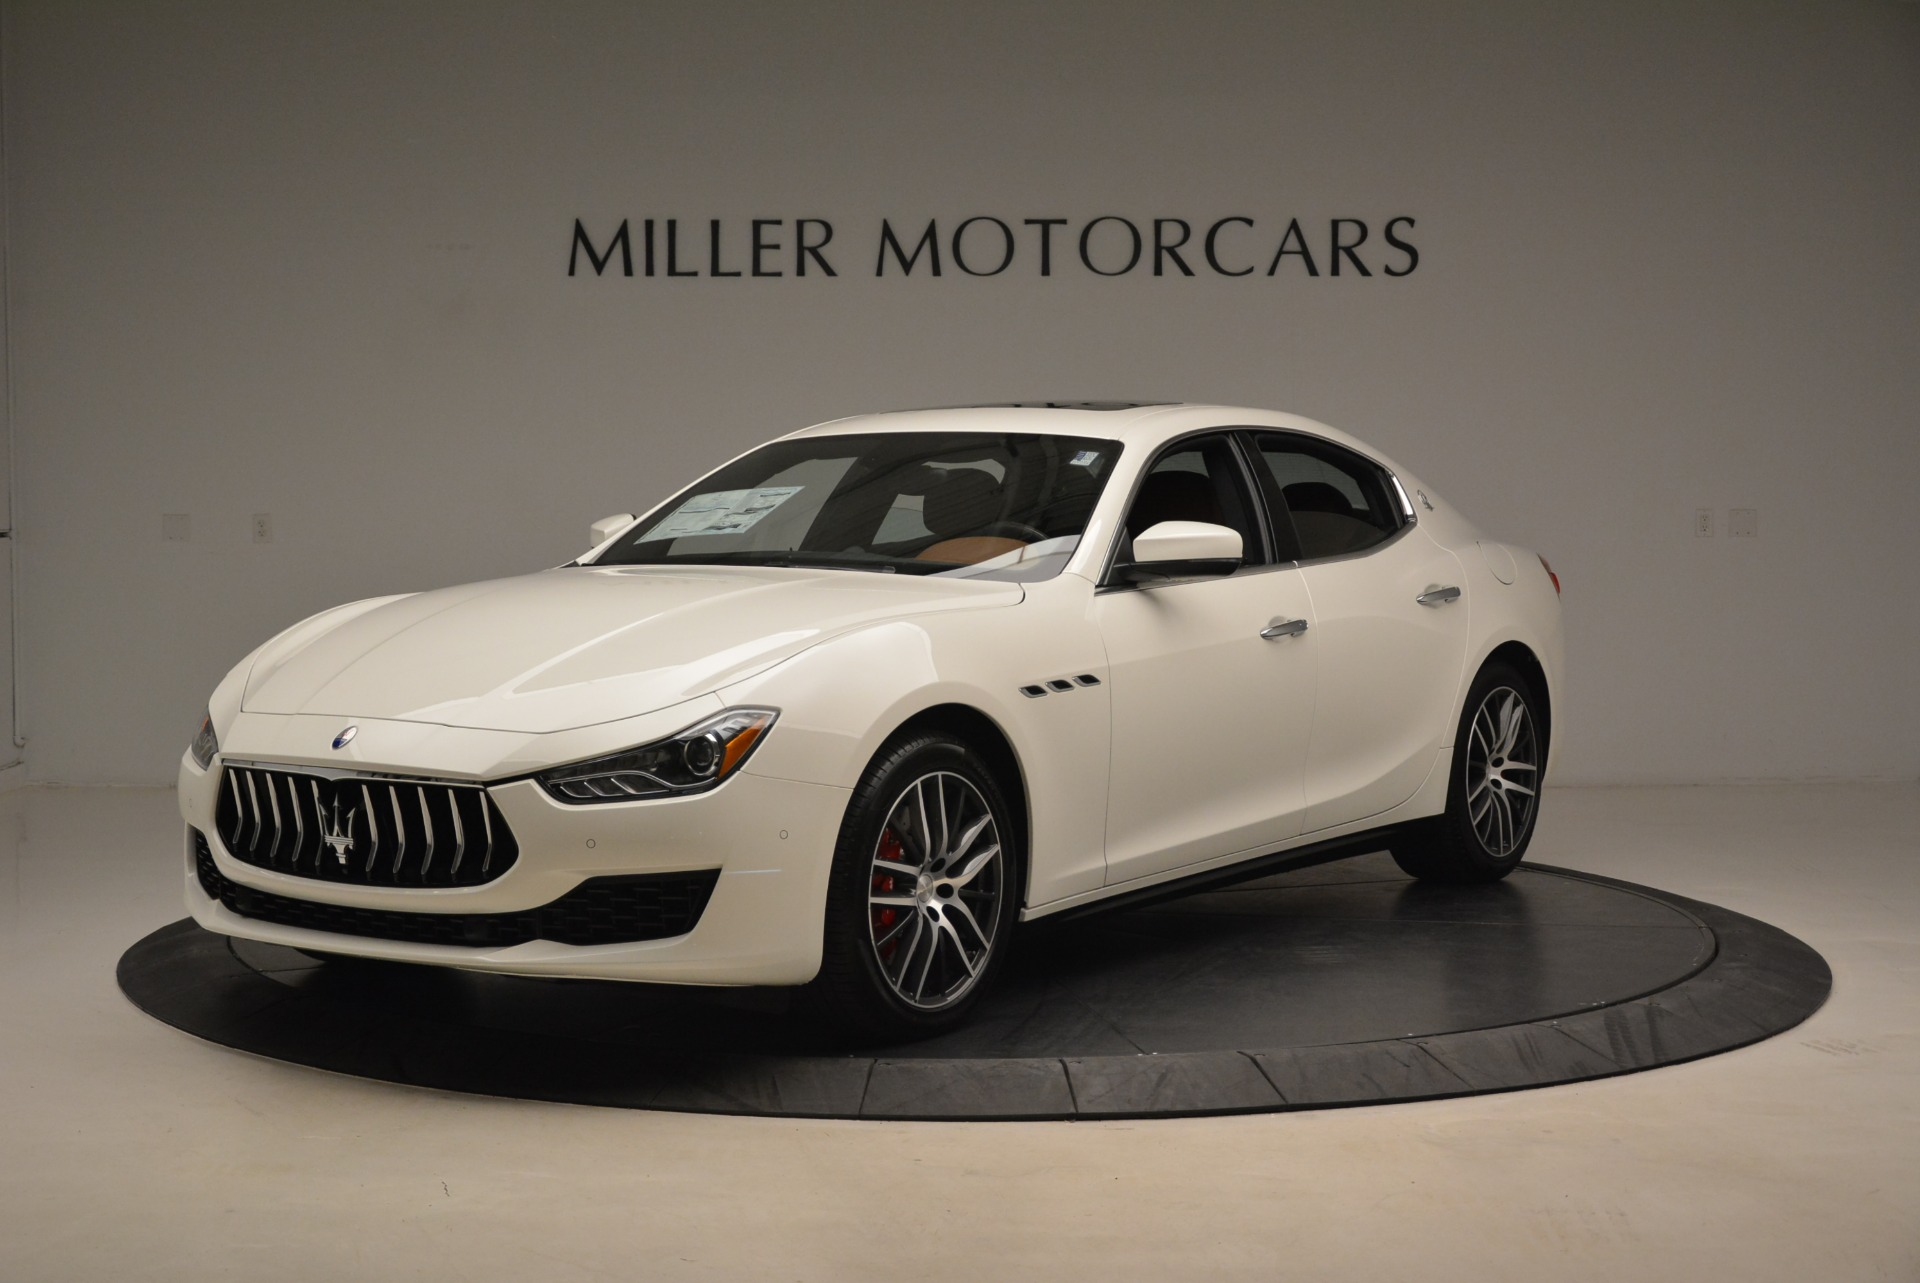 Used 2019 Maserati Ghibli S Q4 for sale Sold at McLaren Greenwich in Greenwich CT 06830 1